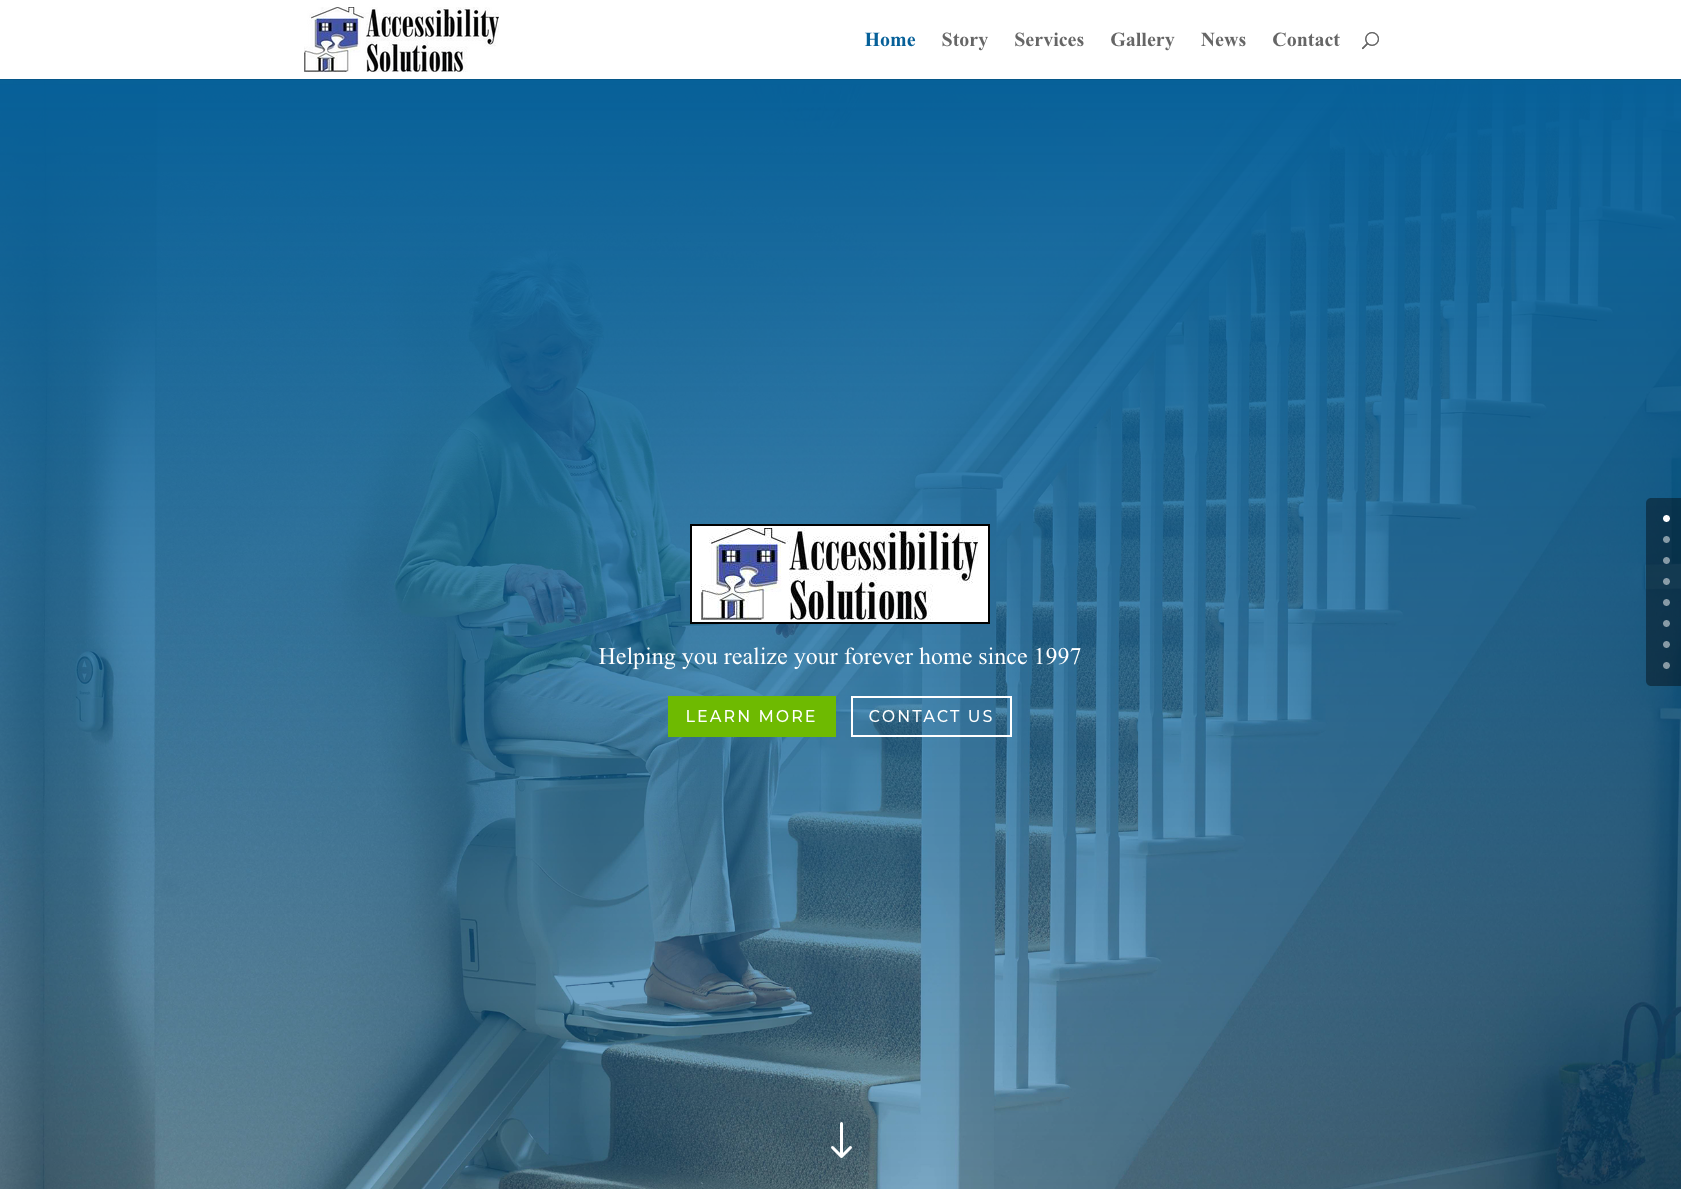 Accessibility Solutions website